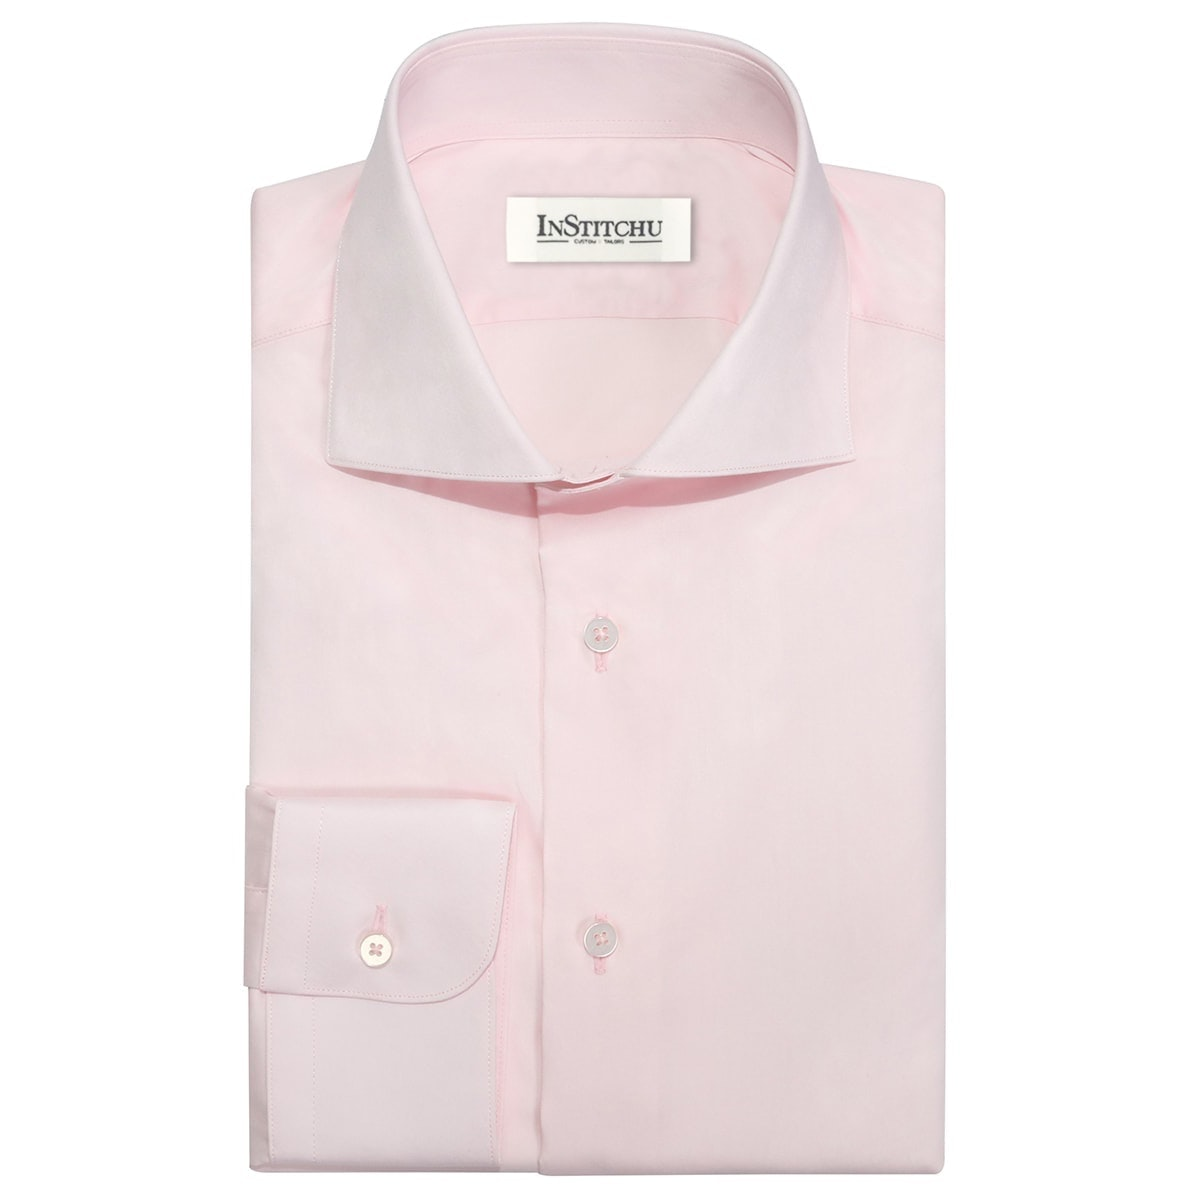 InStitchu Collection The Snapper Pink Shirt